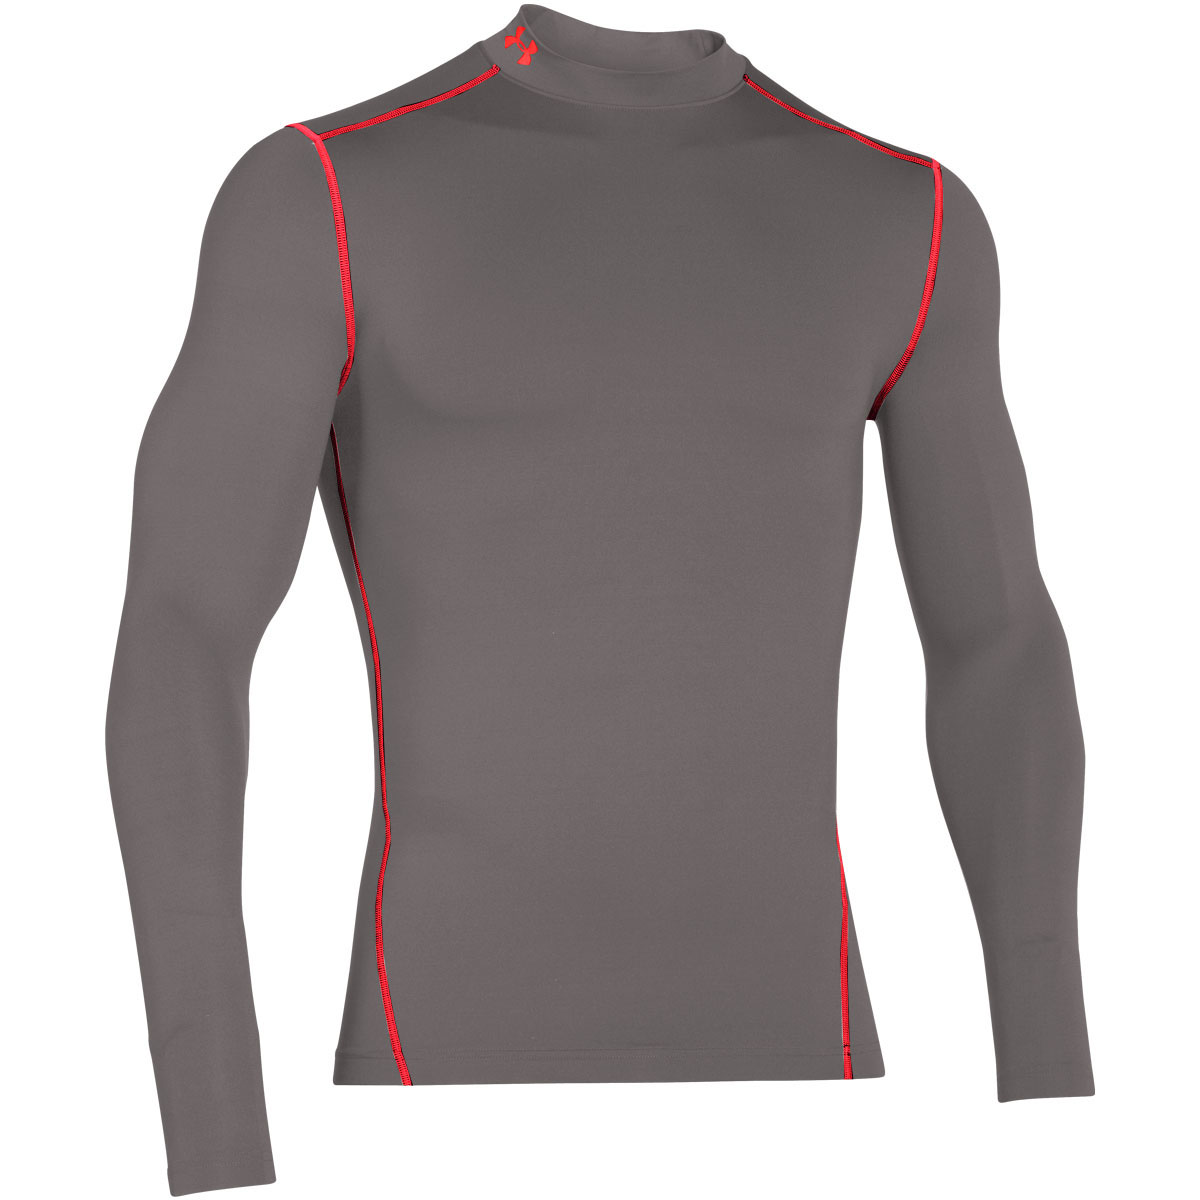 View all mens clothing Welcome to the Sports Direct Mens Base Layer department. Here we have a huge collection of men's compression clothing from sports fitness brands including Nike Pro, .